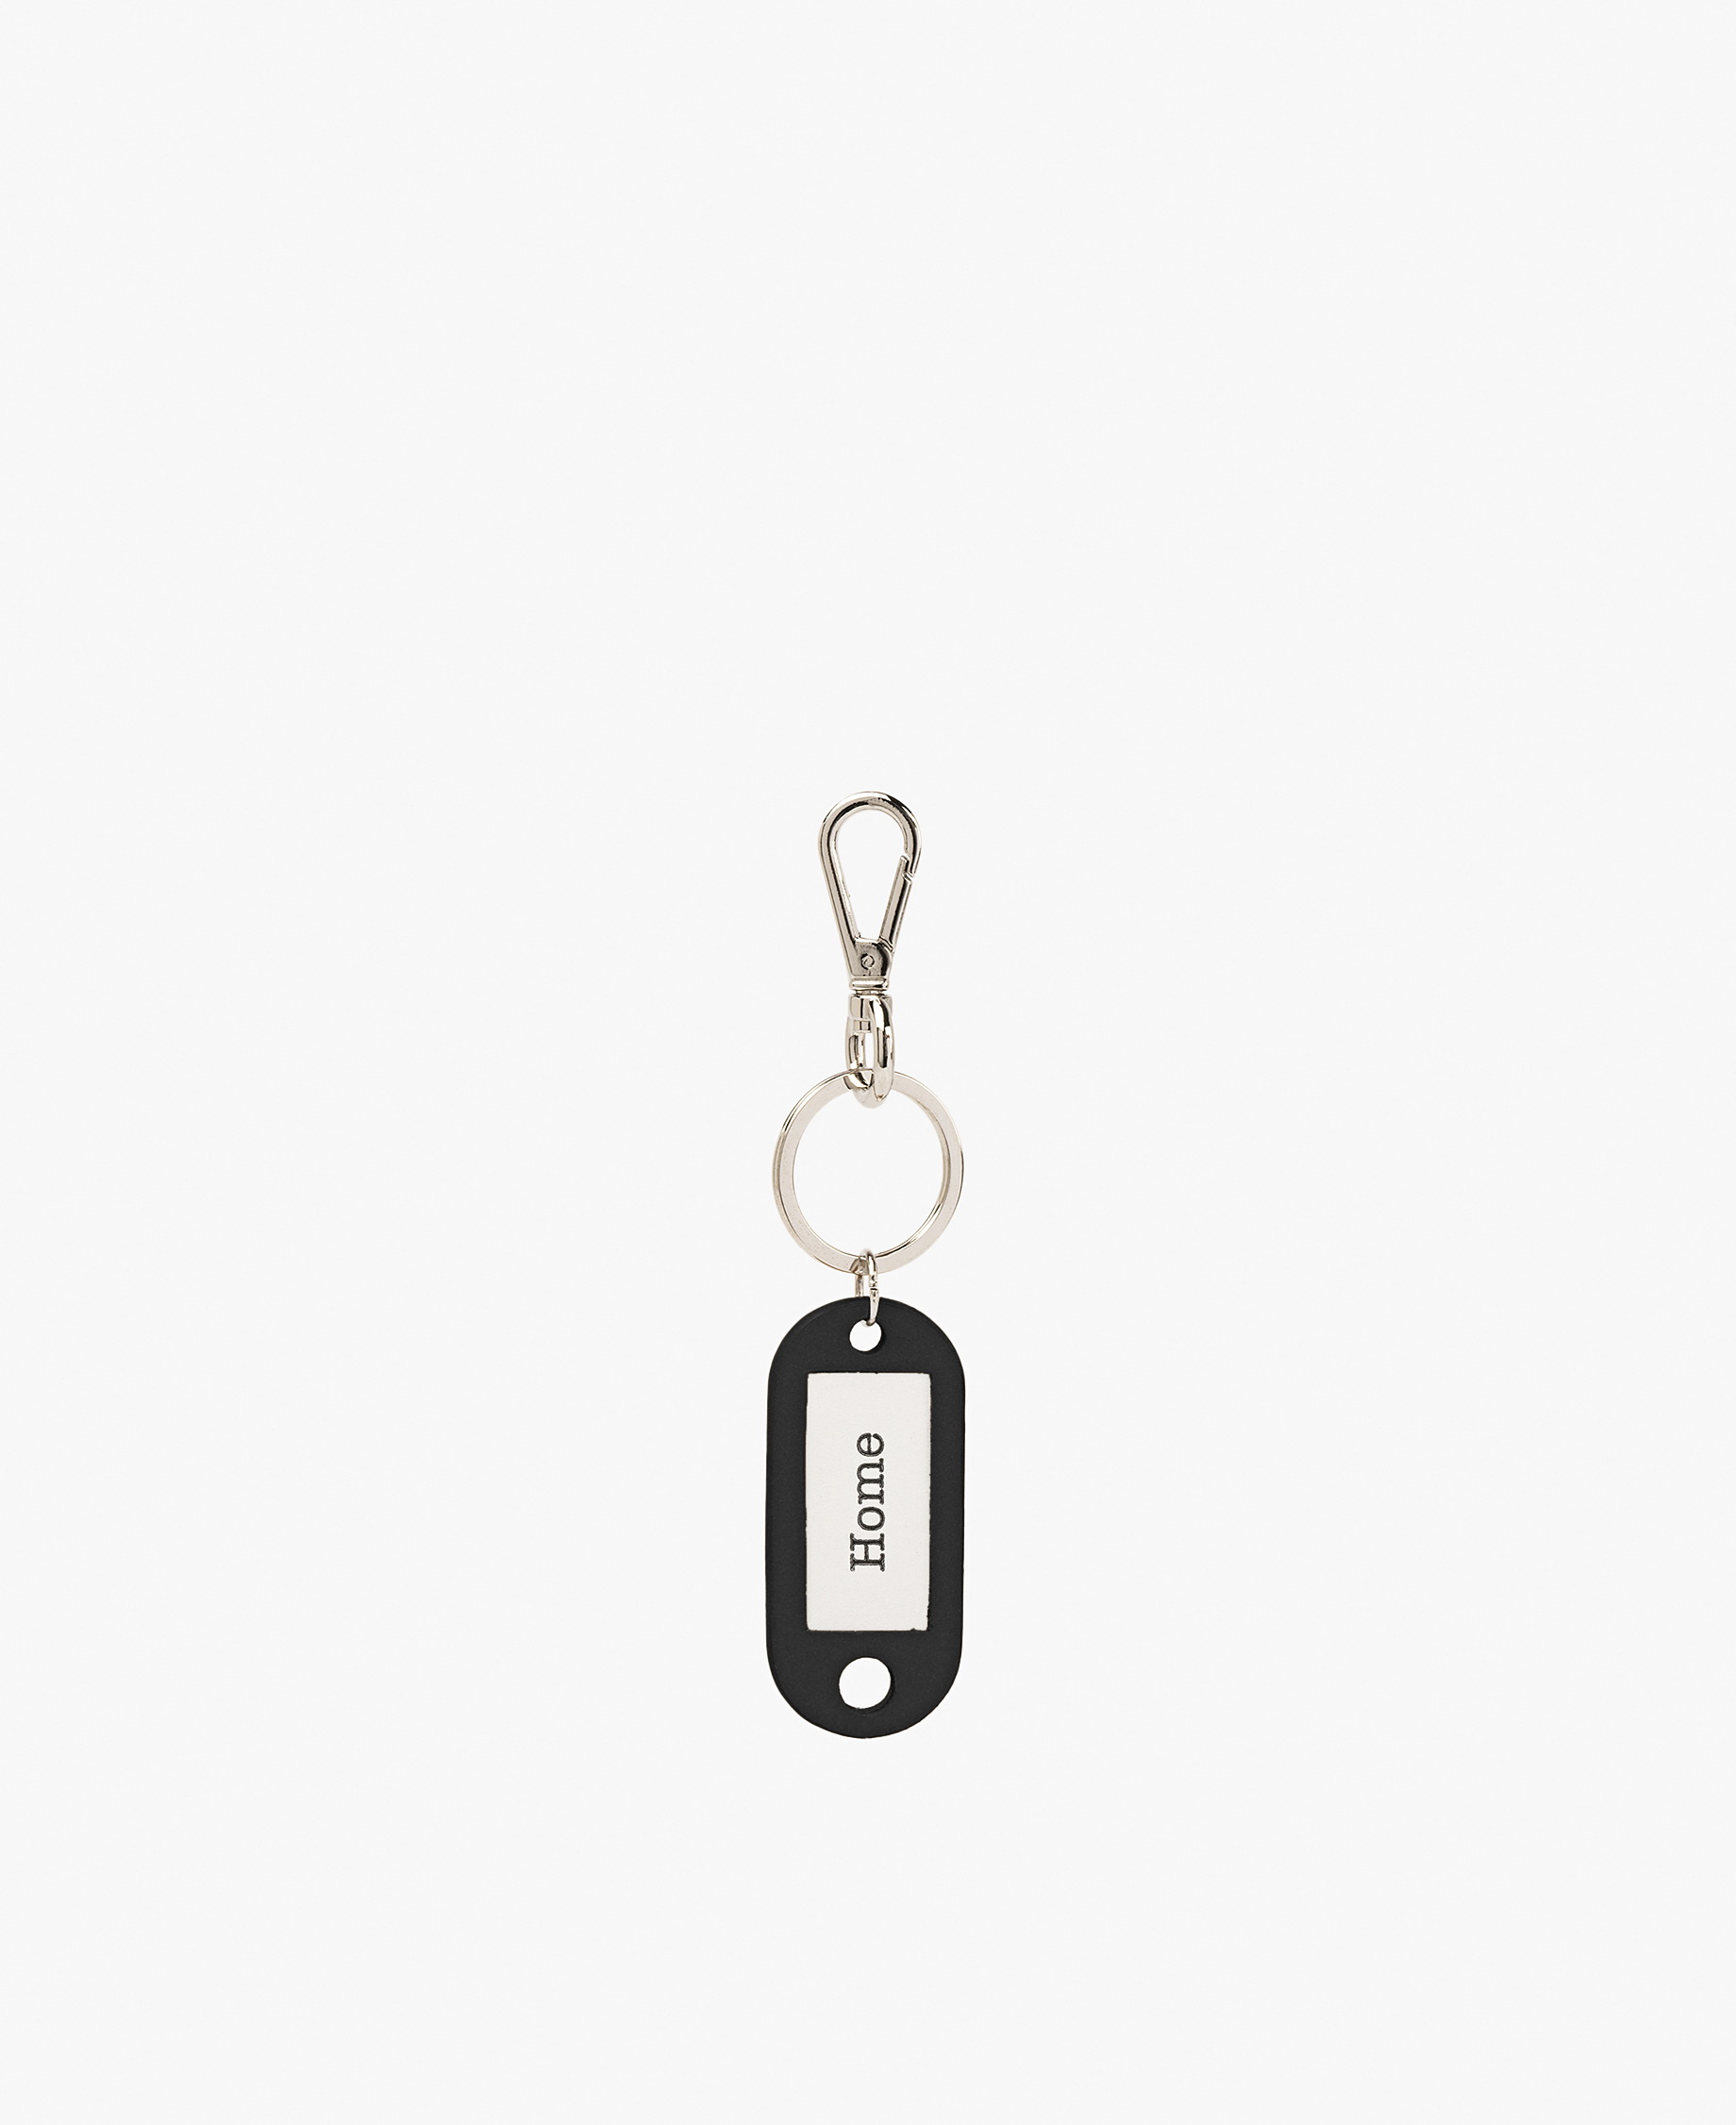 black key holder for home